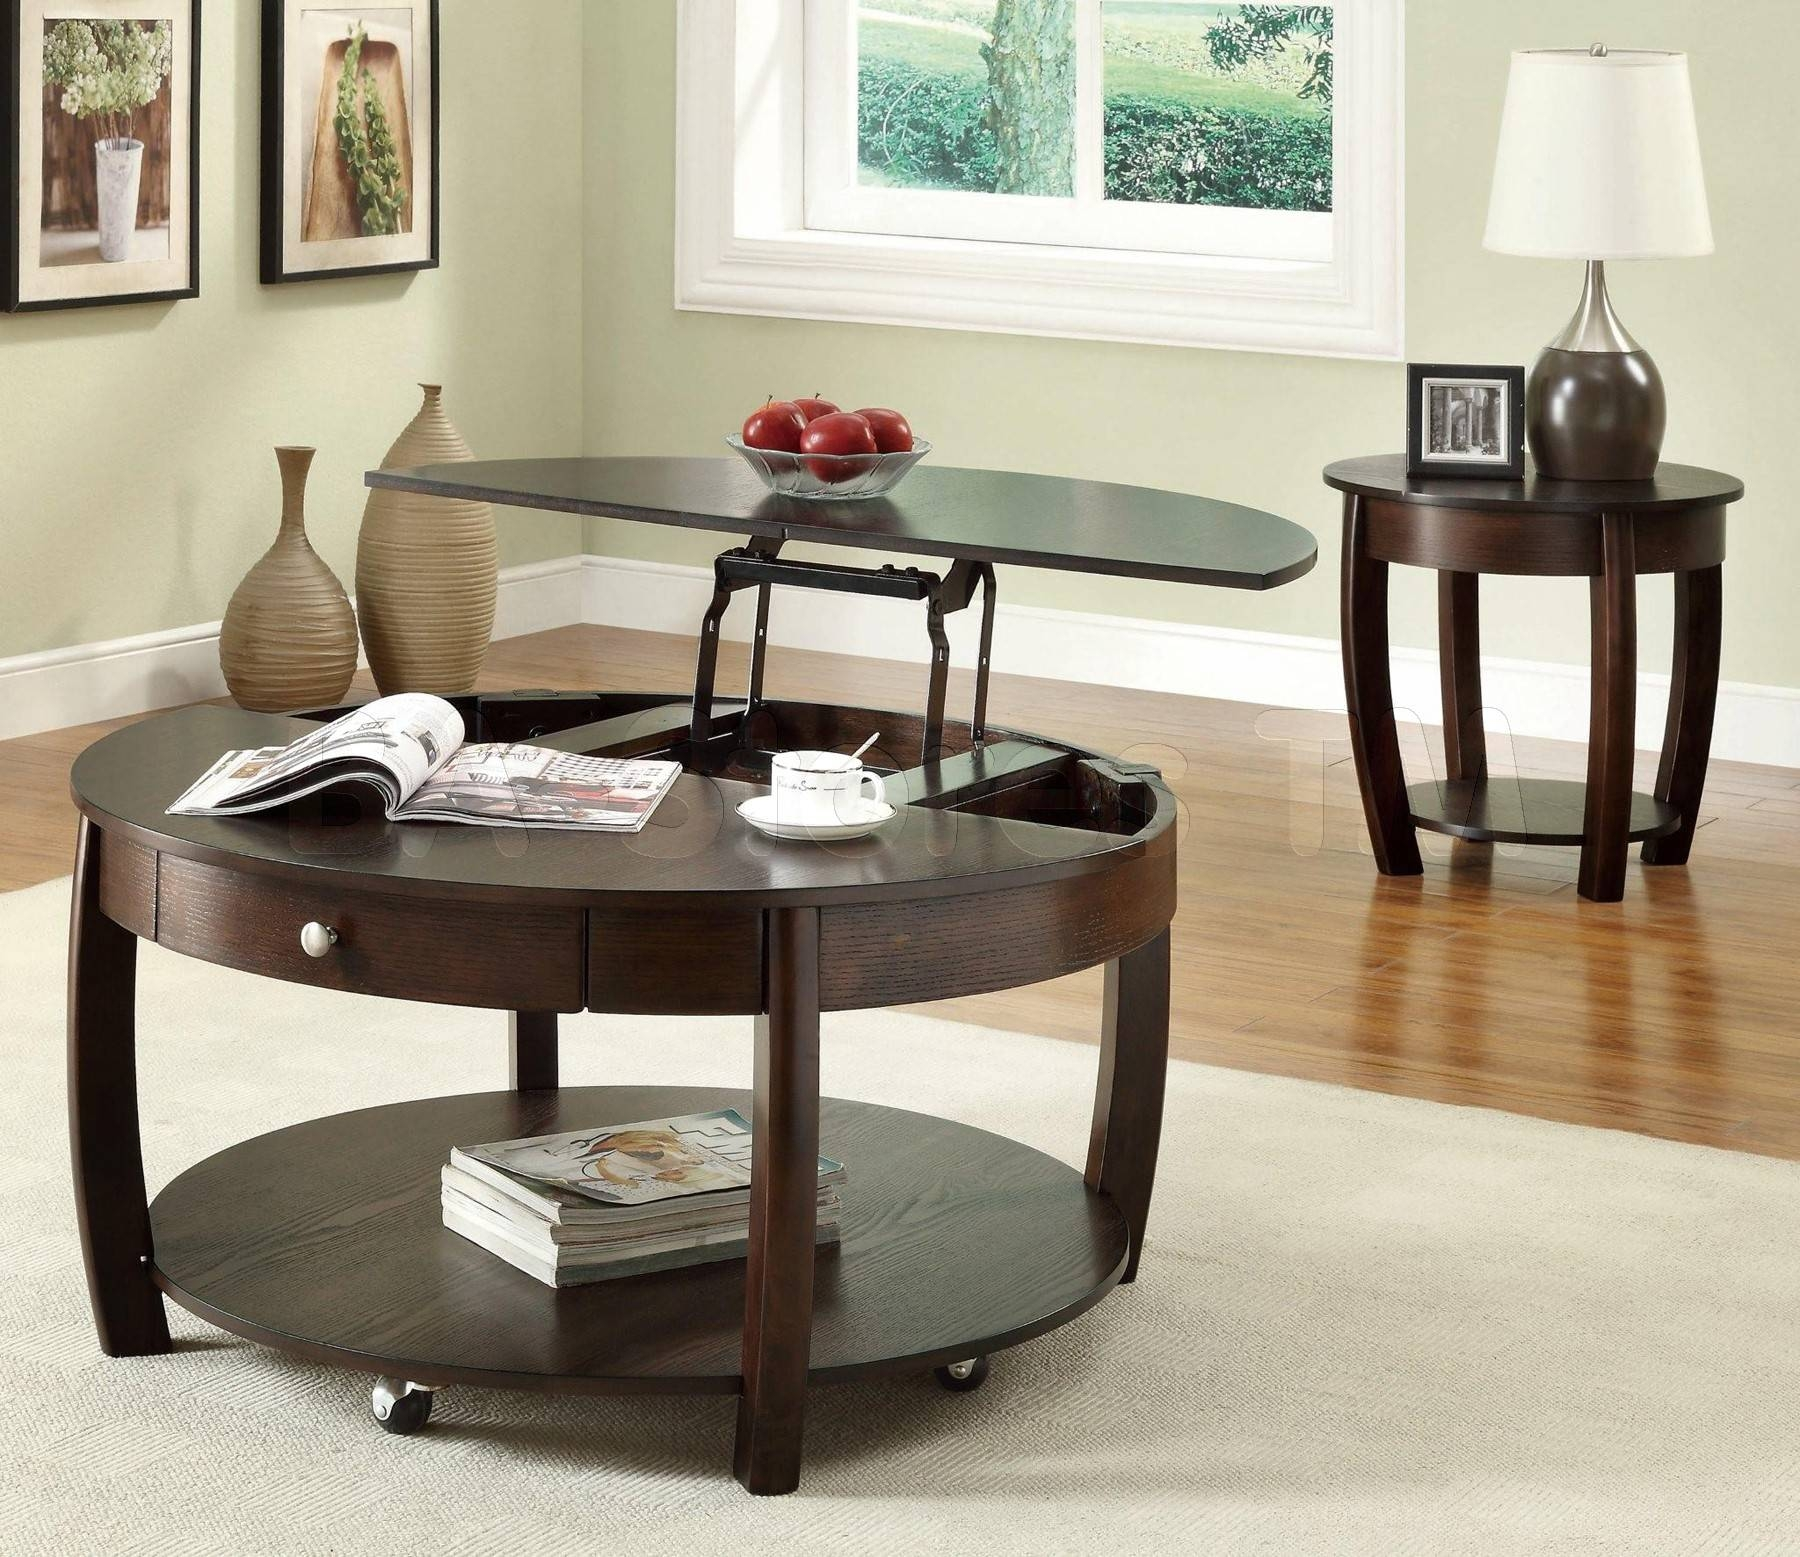 Furniture. Fabulous Round Coffee Table With Storage Bring An regarding Round Coffee Tables With Drawers (Image 10 of 30)